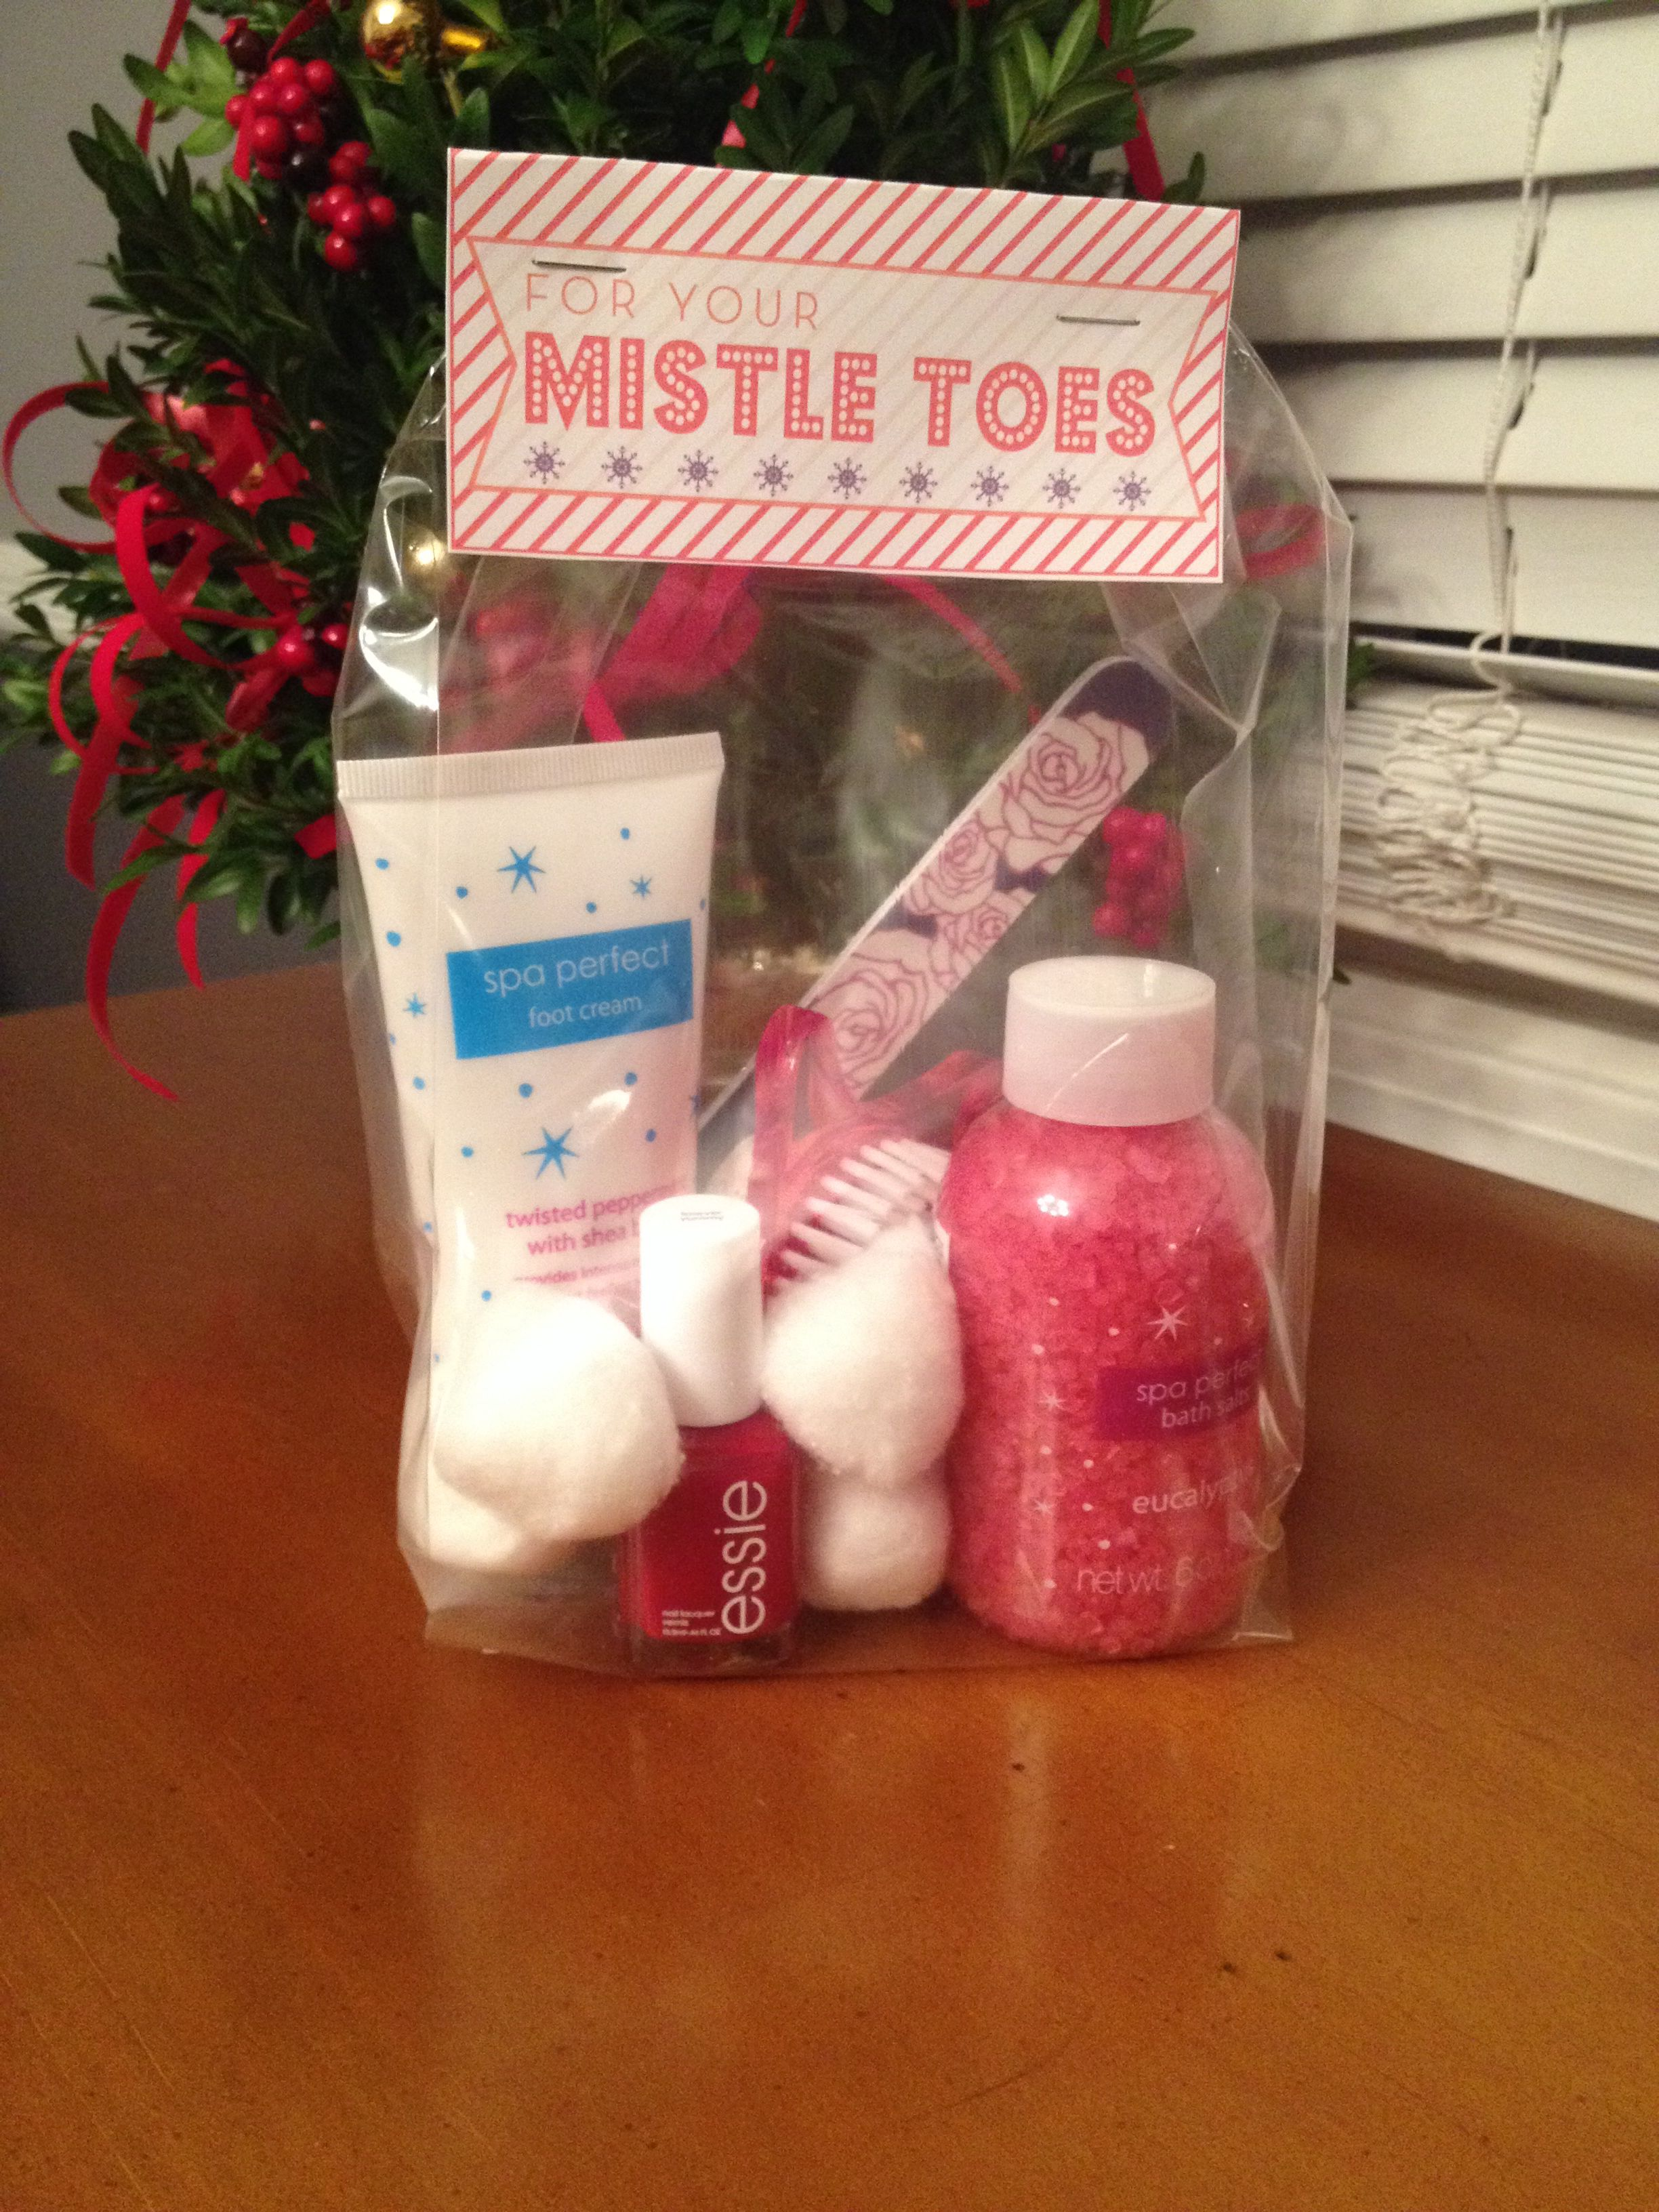 Pedicure Gift For Your Mistletoes Pedicure Gift Teacher Gifts Gifts